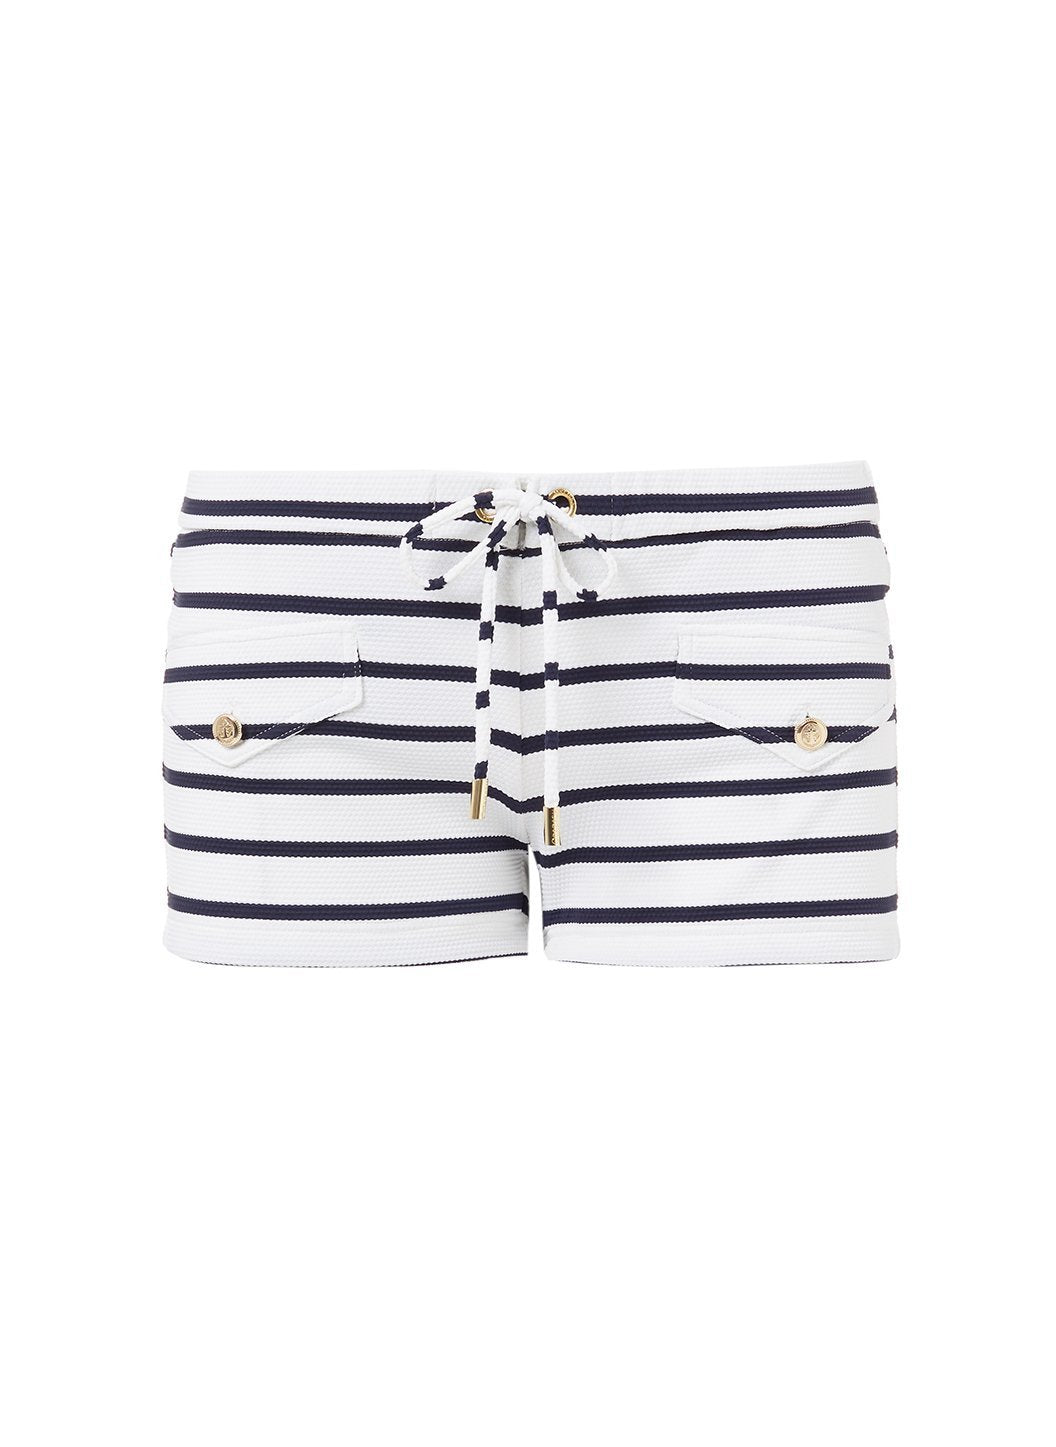 tamara marine beach shorts 2019